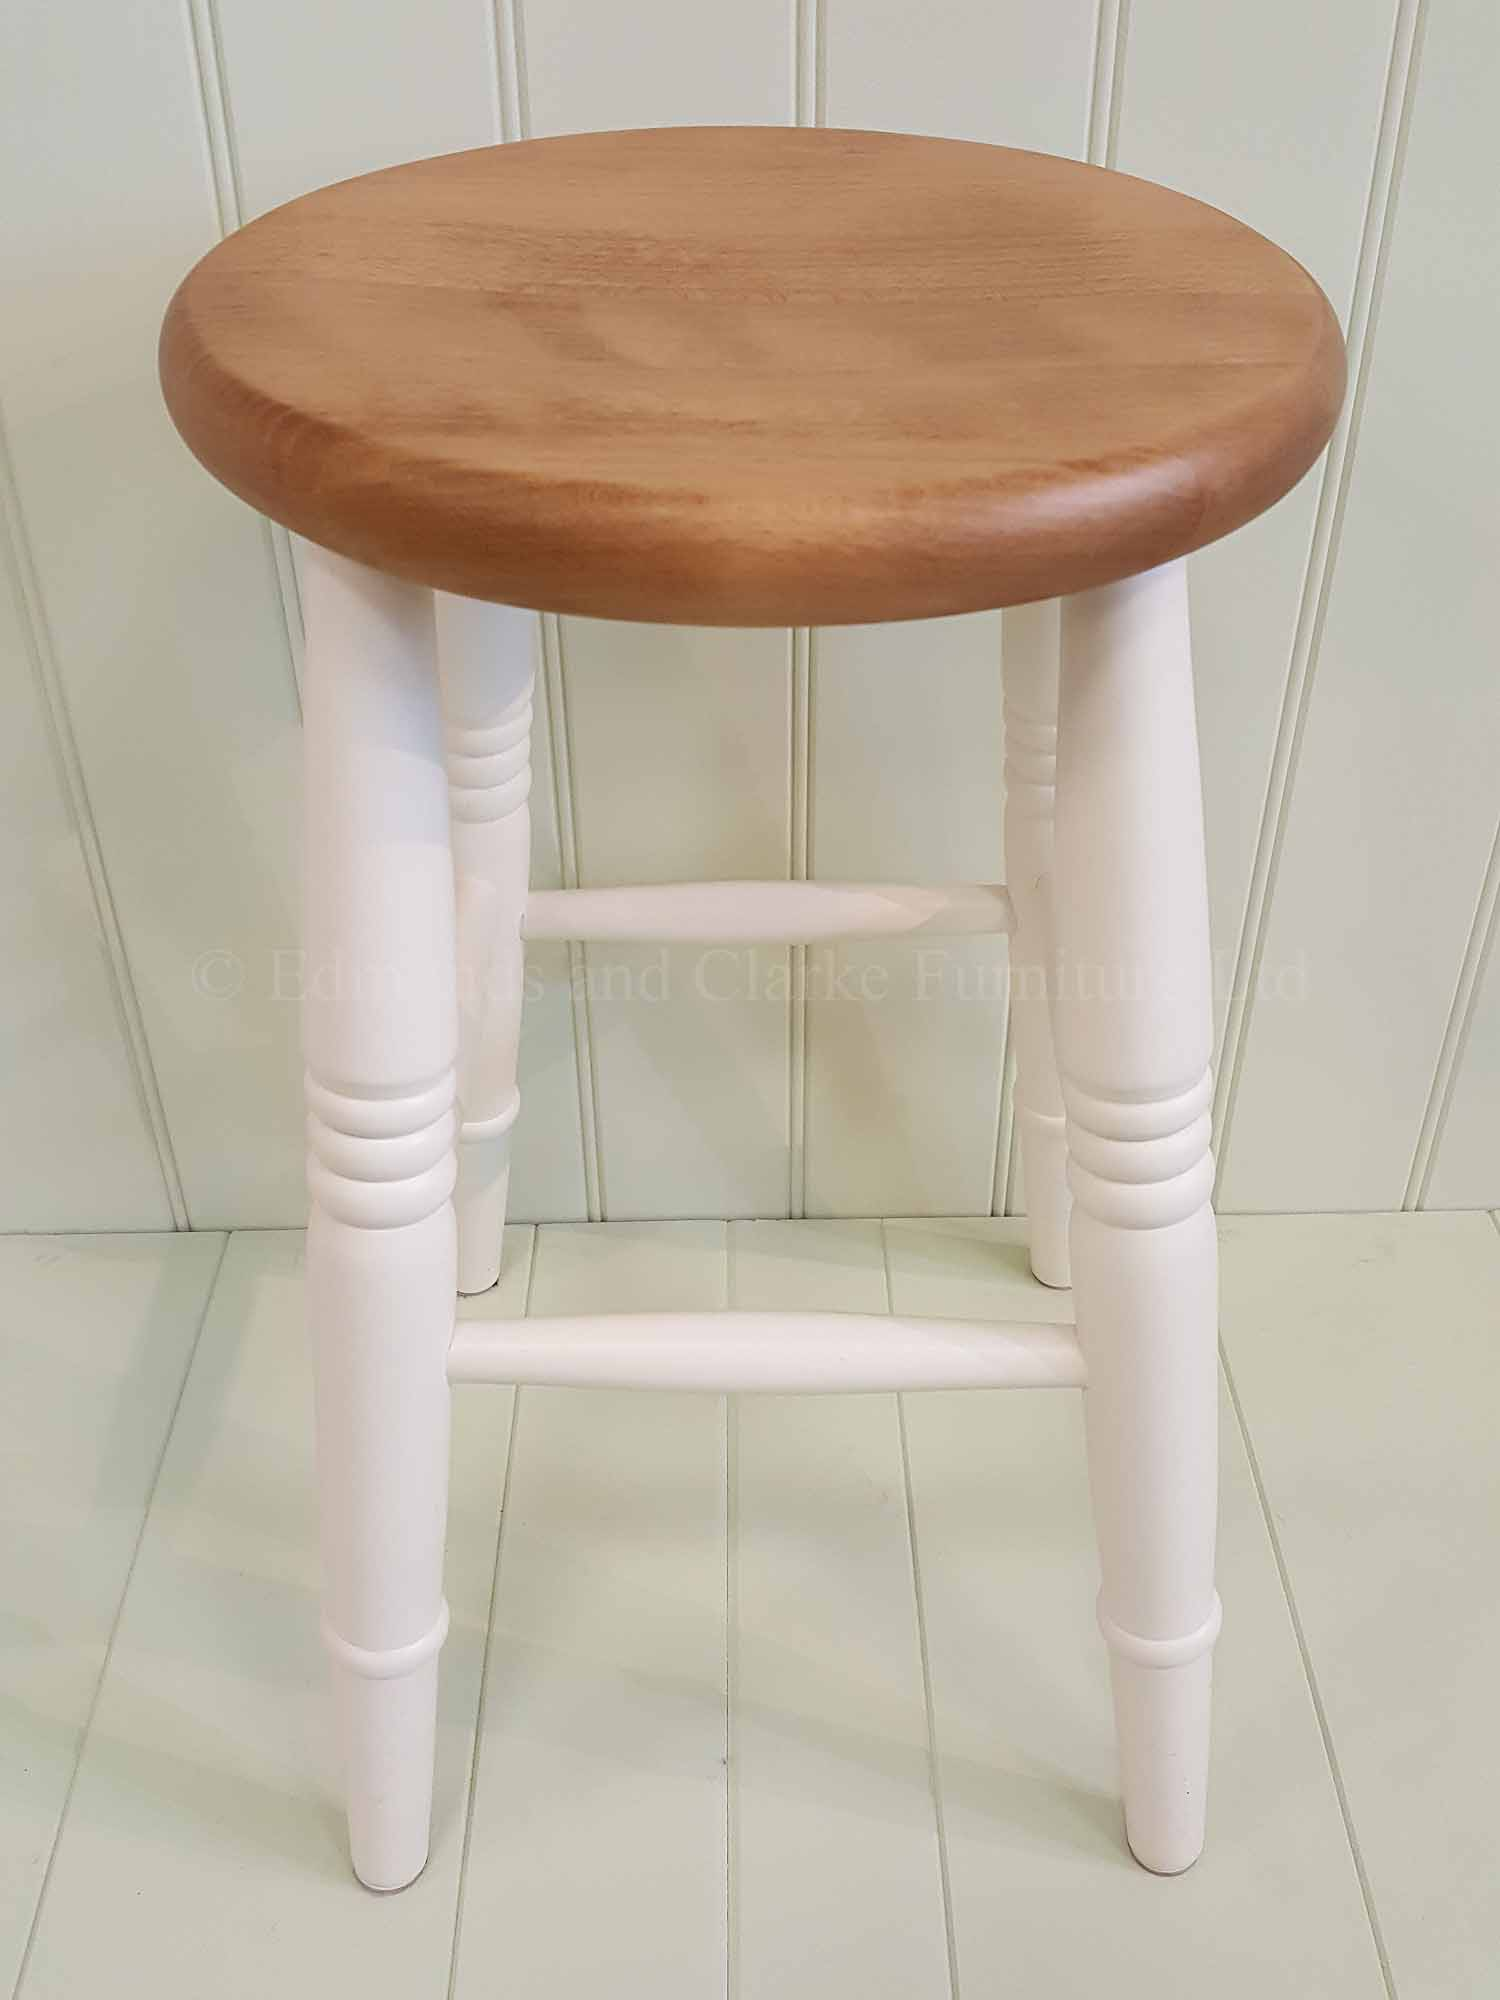 Low farmhouse stool painted with pine seat